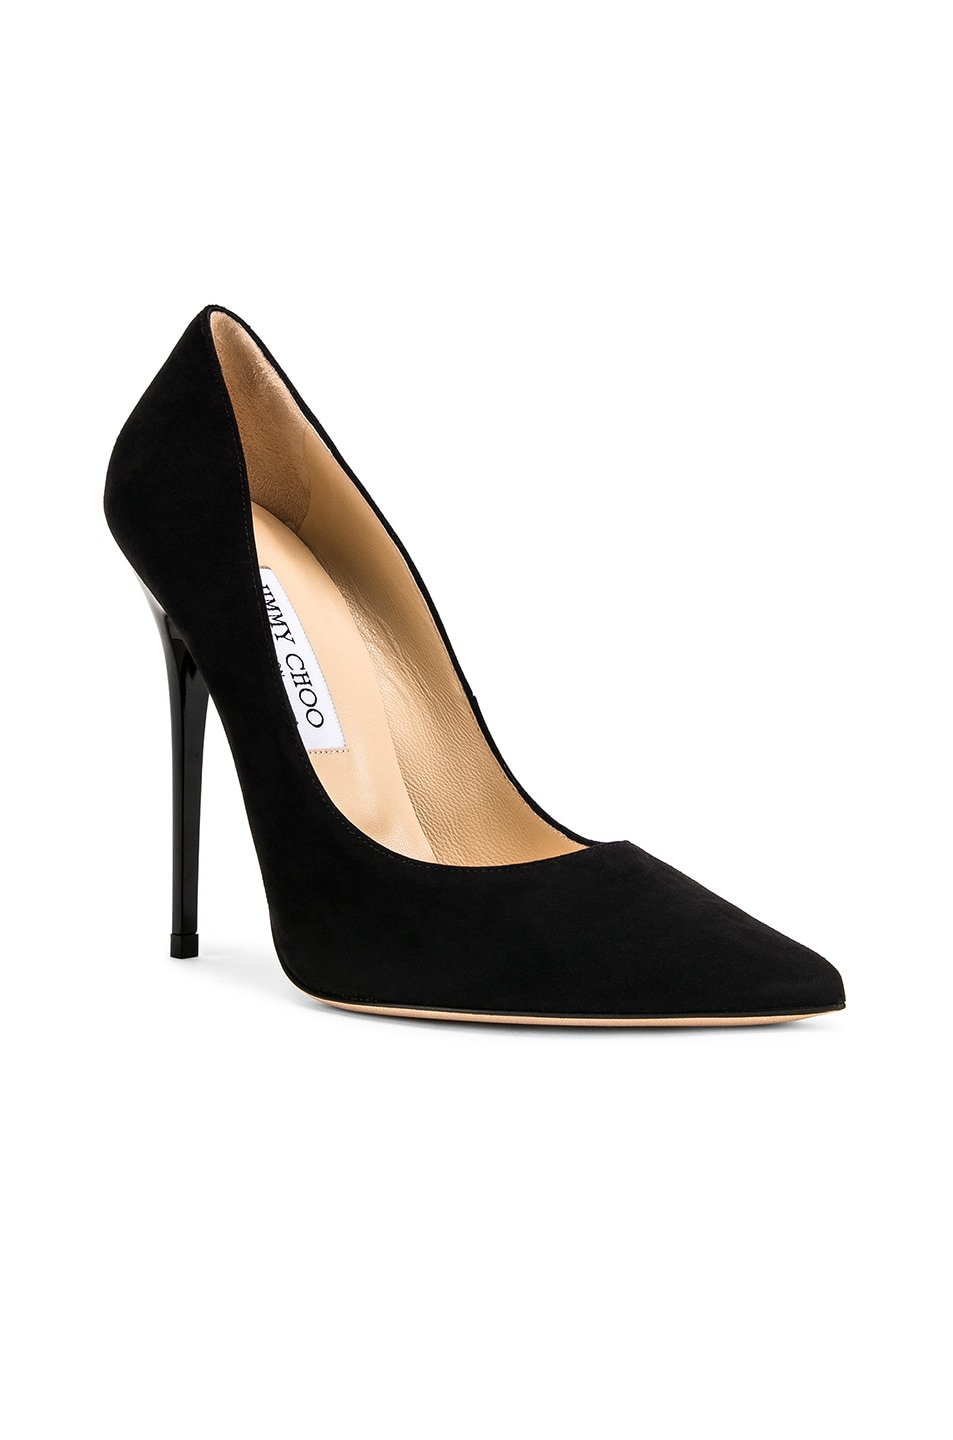 Image 2 of Jimmy Choo Anouk 120 Suede Pumps in Black